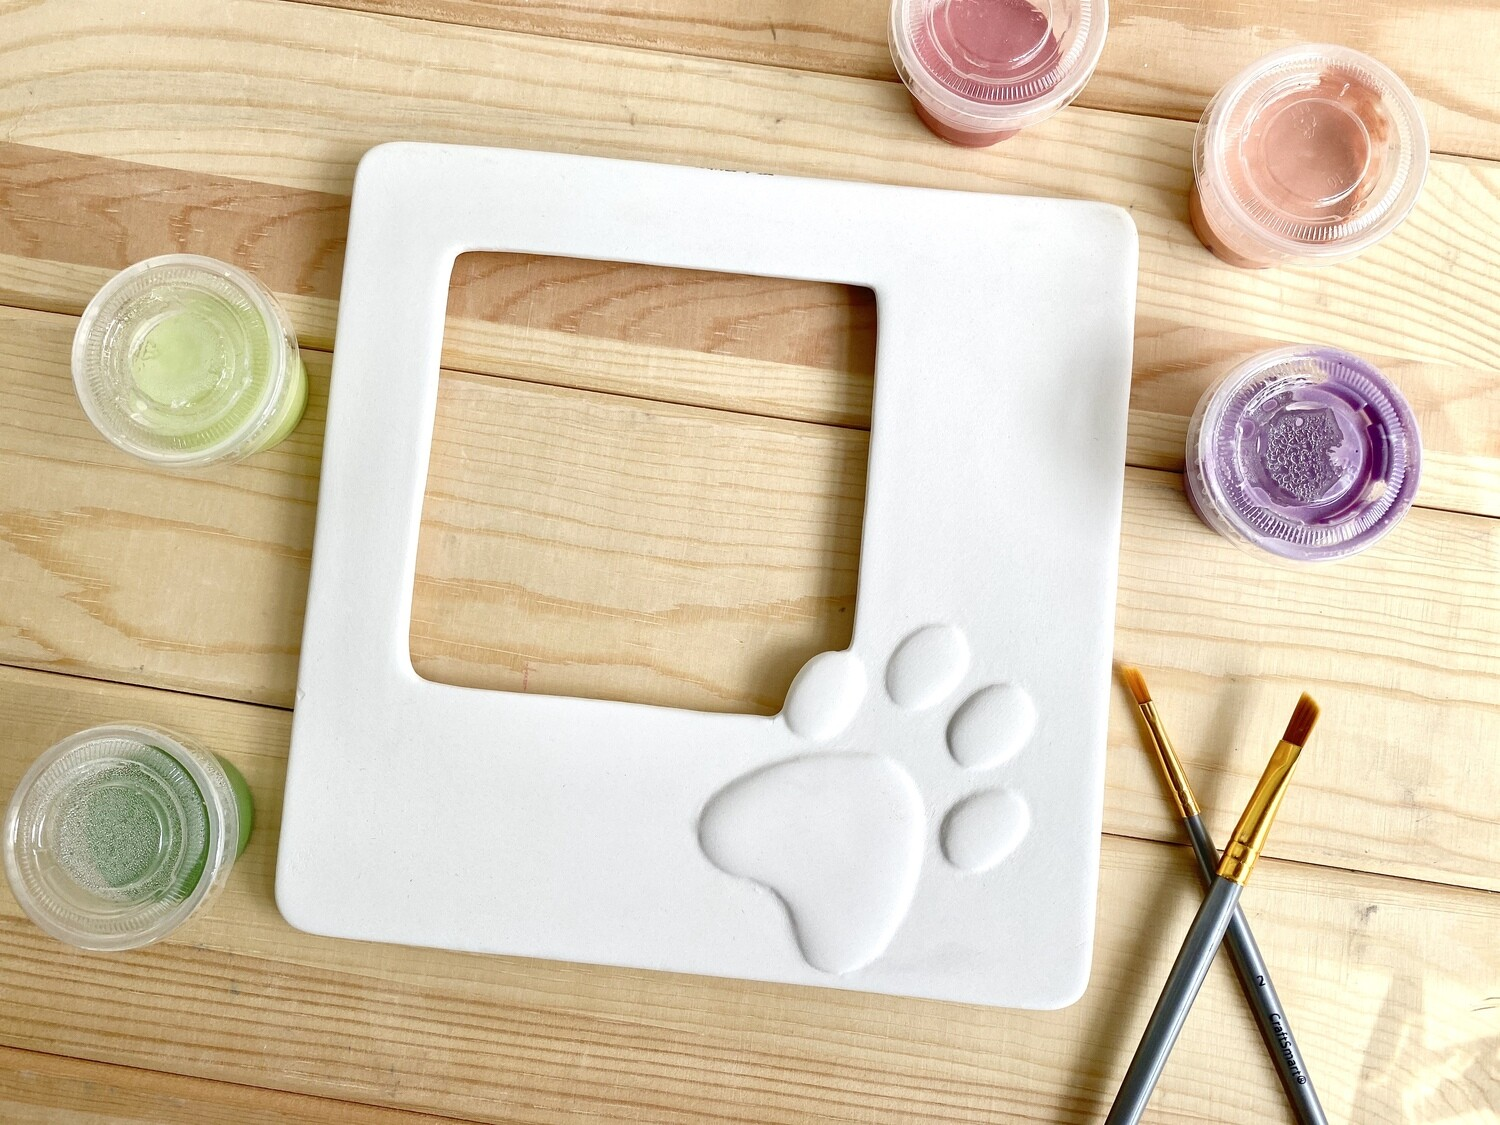 Take Home Paw Print Picture Frame with Glazes- Pick Up Curbside